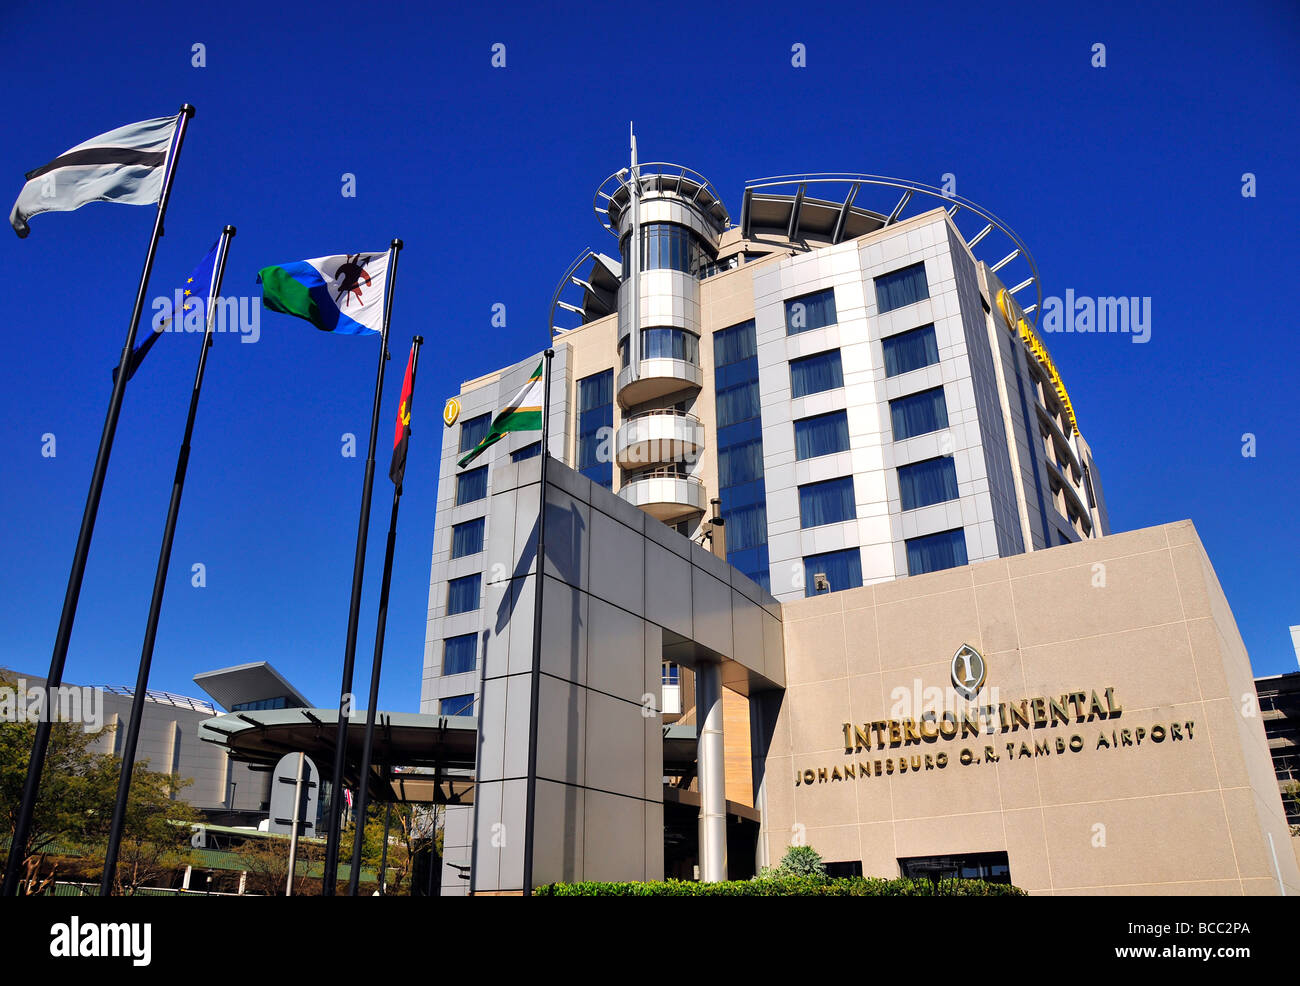 Intercontinental Hotel, Johannesburg O.R. Tambo Airport , South Africa - Stock Image